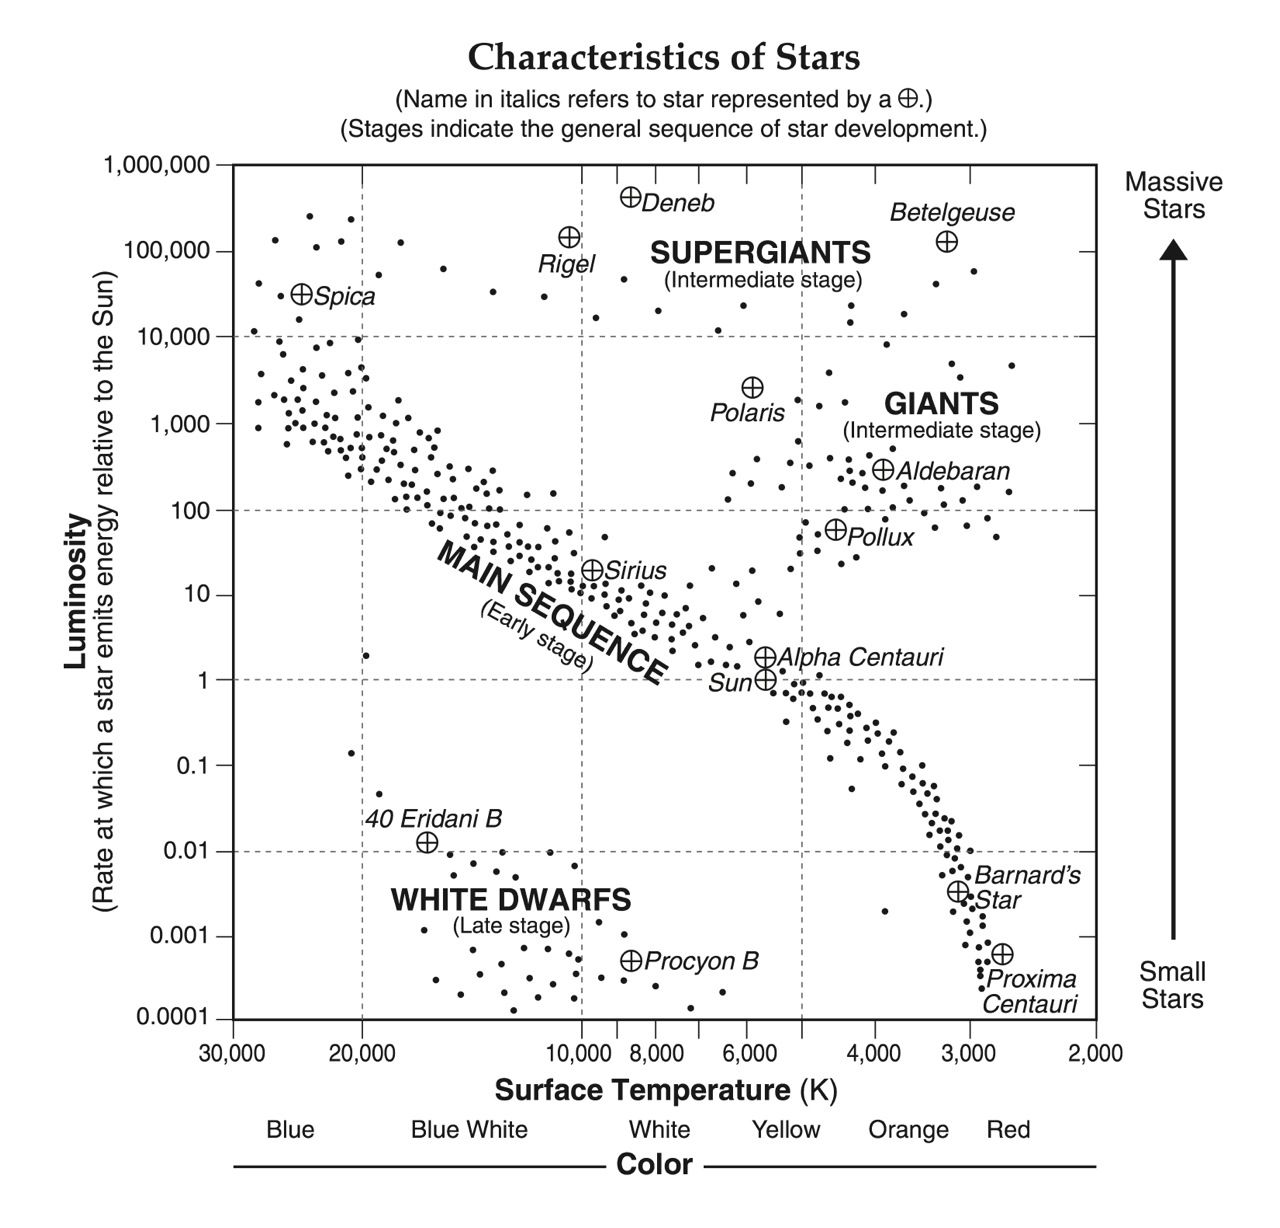 Hmxearthscience galaxies and stars characteristics of stars esrt ccuart